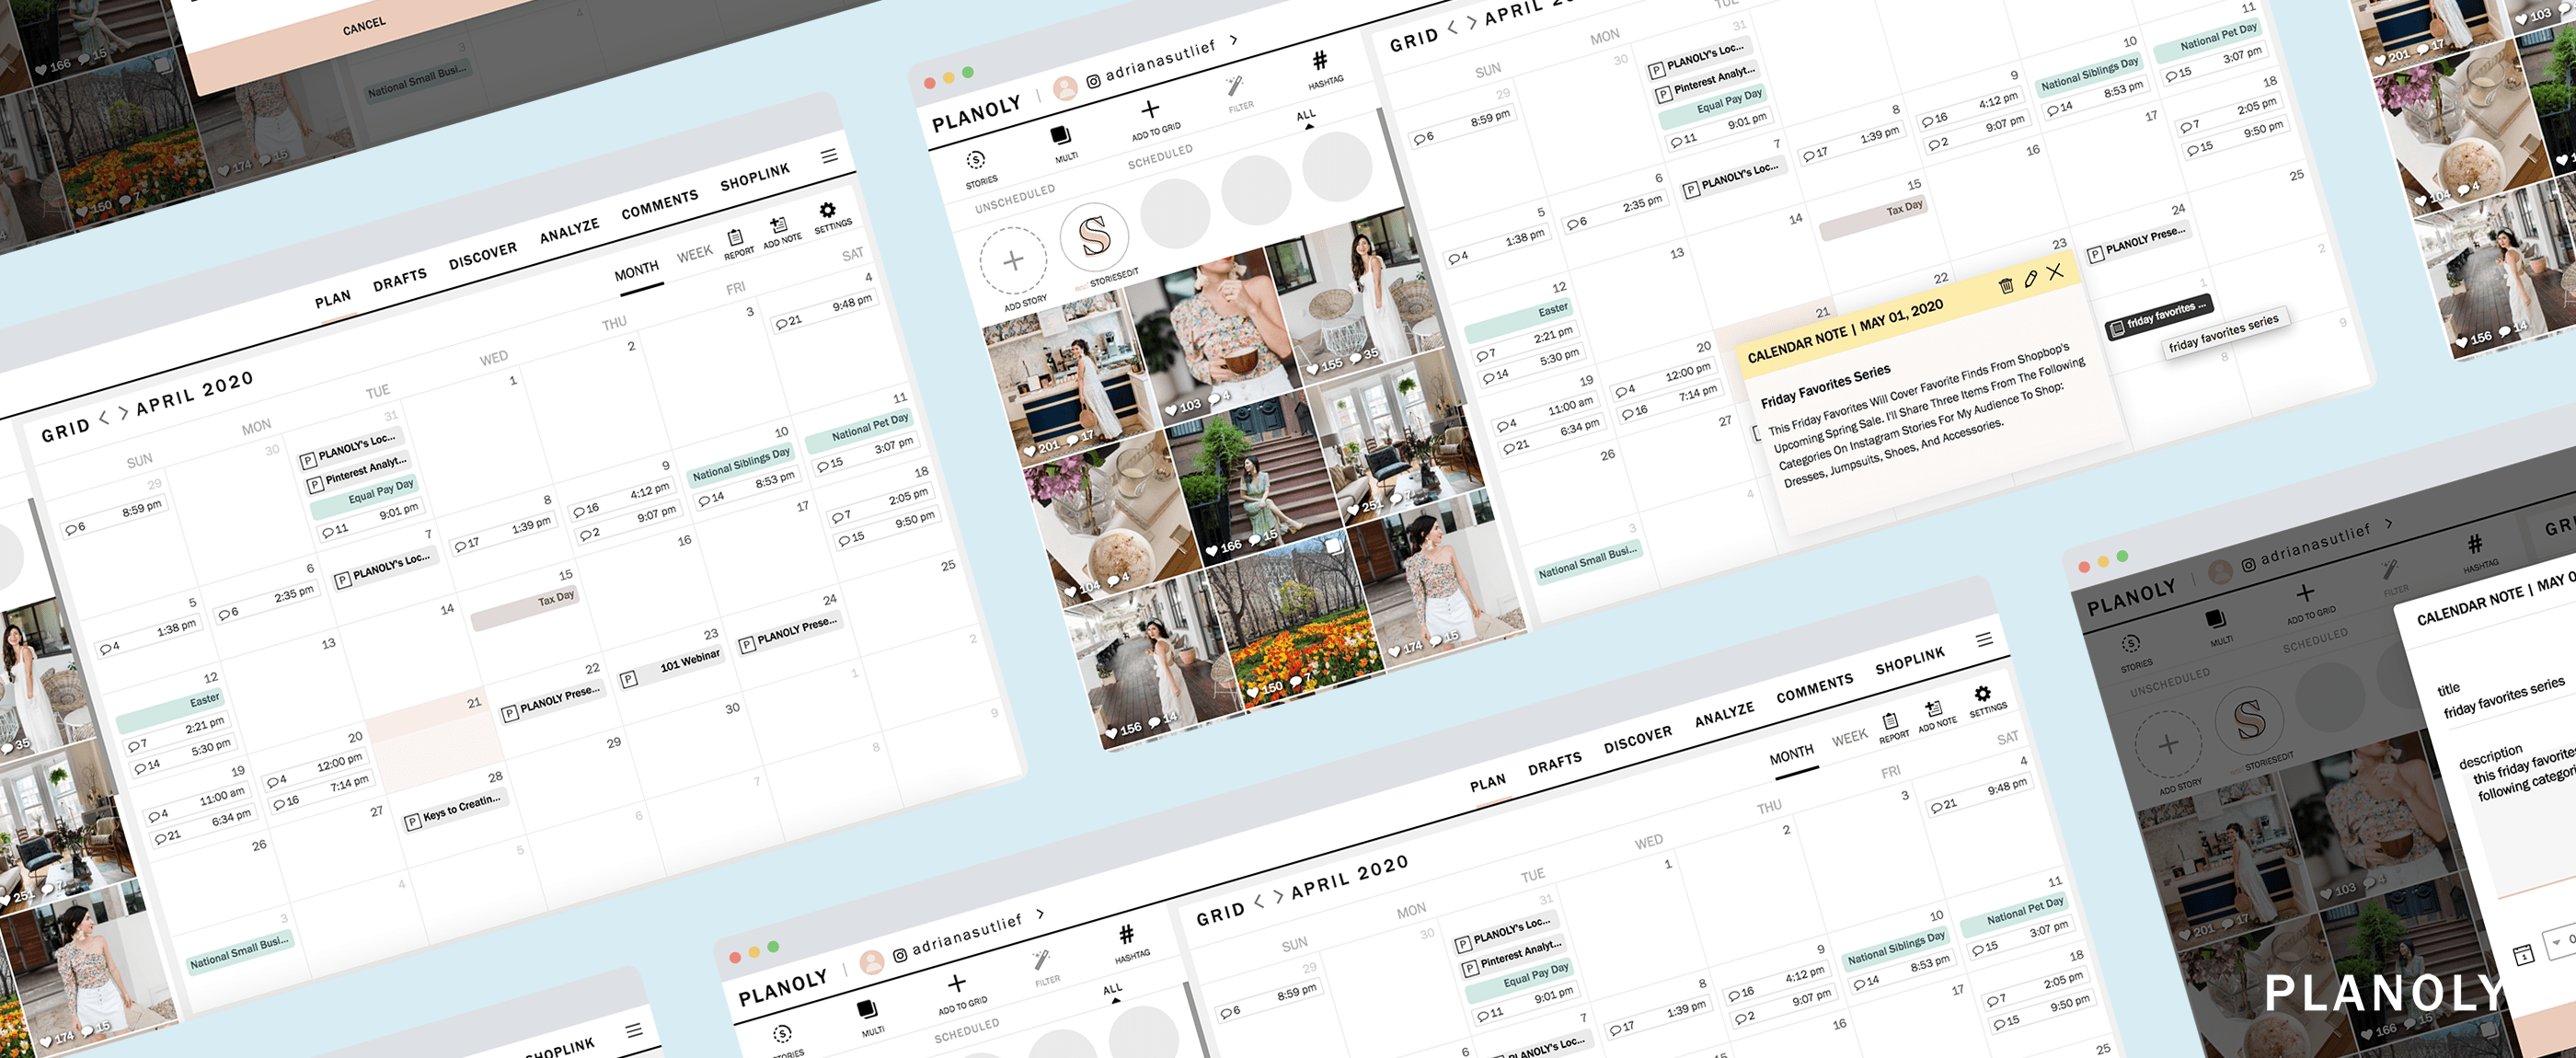 PLANOLY-Blog-Post-Social-Calendar-Notes-Banner